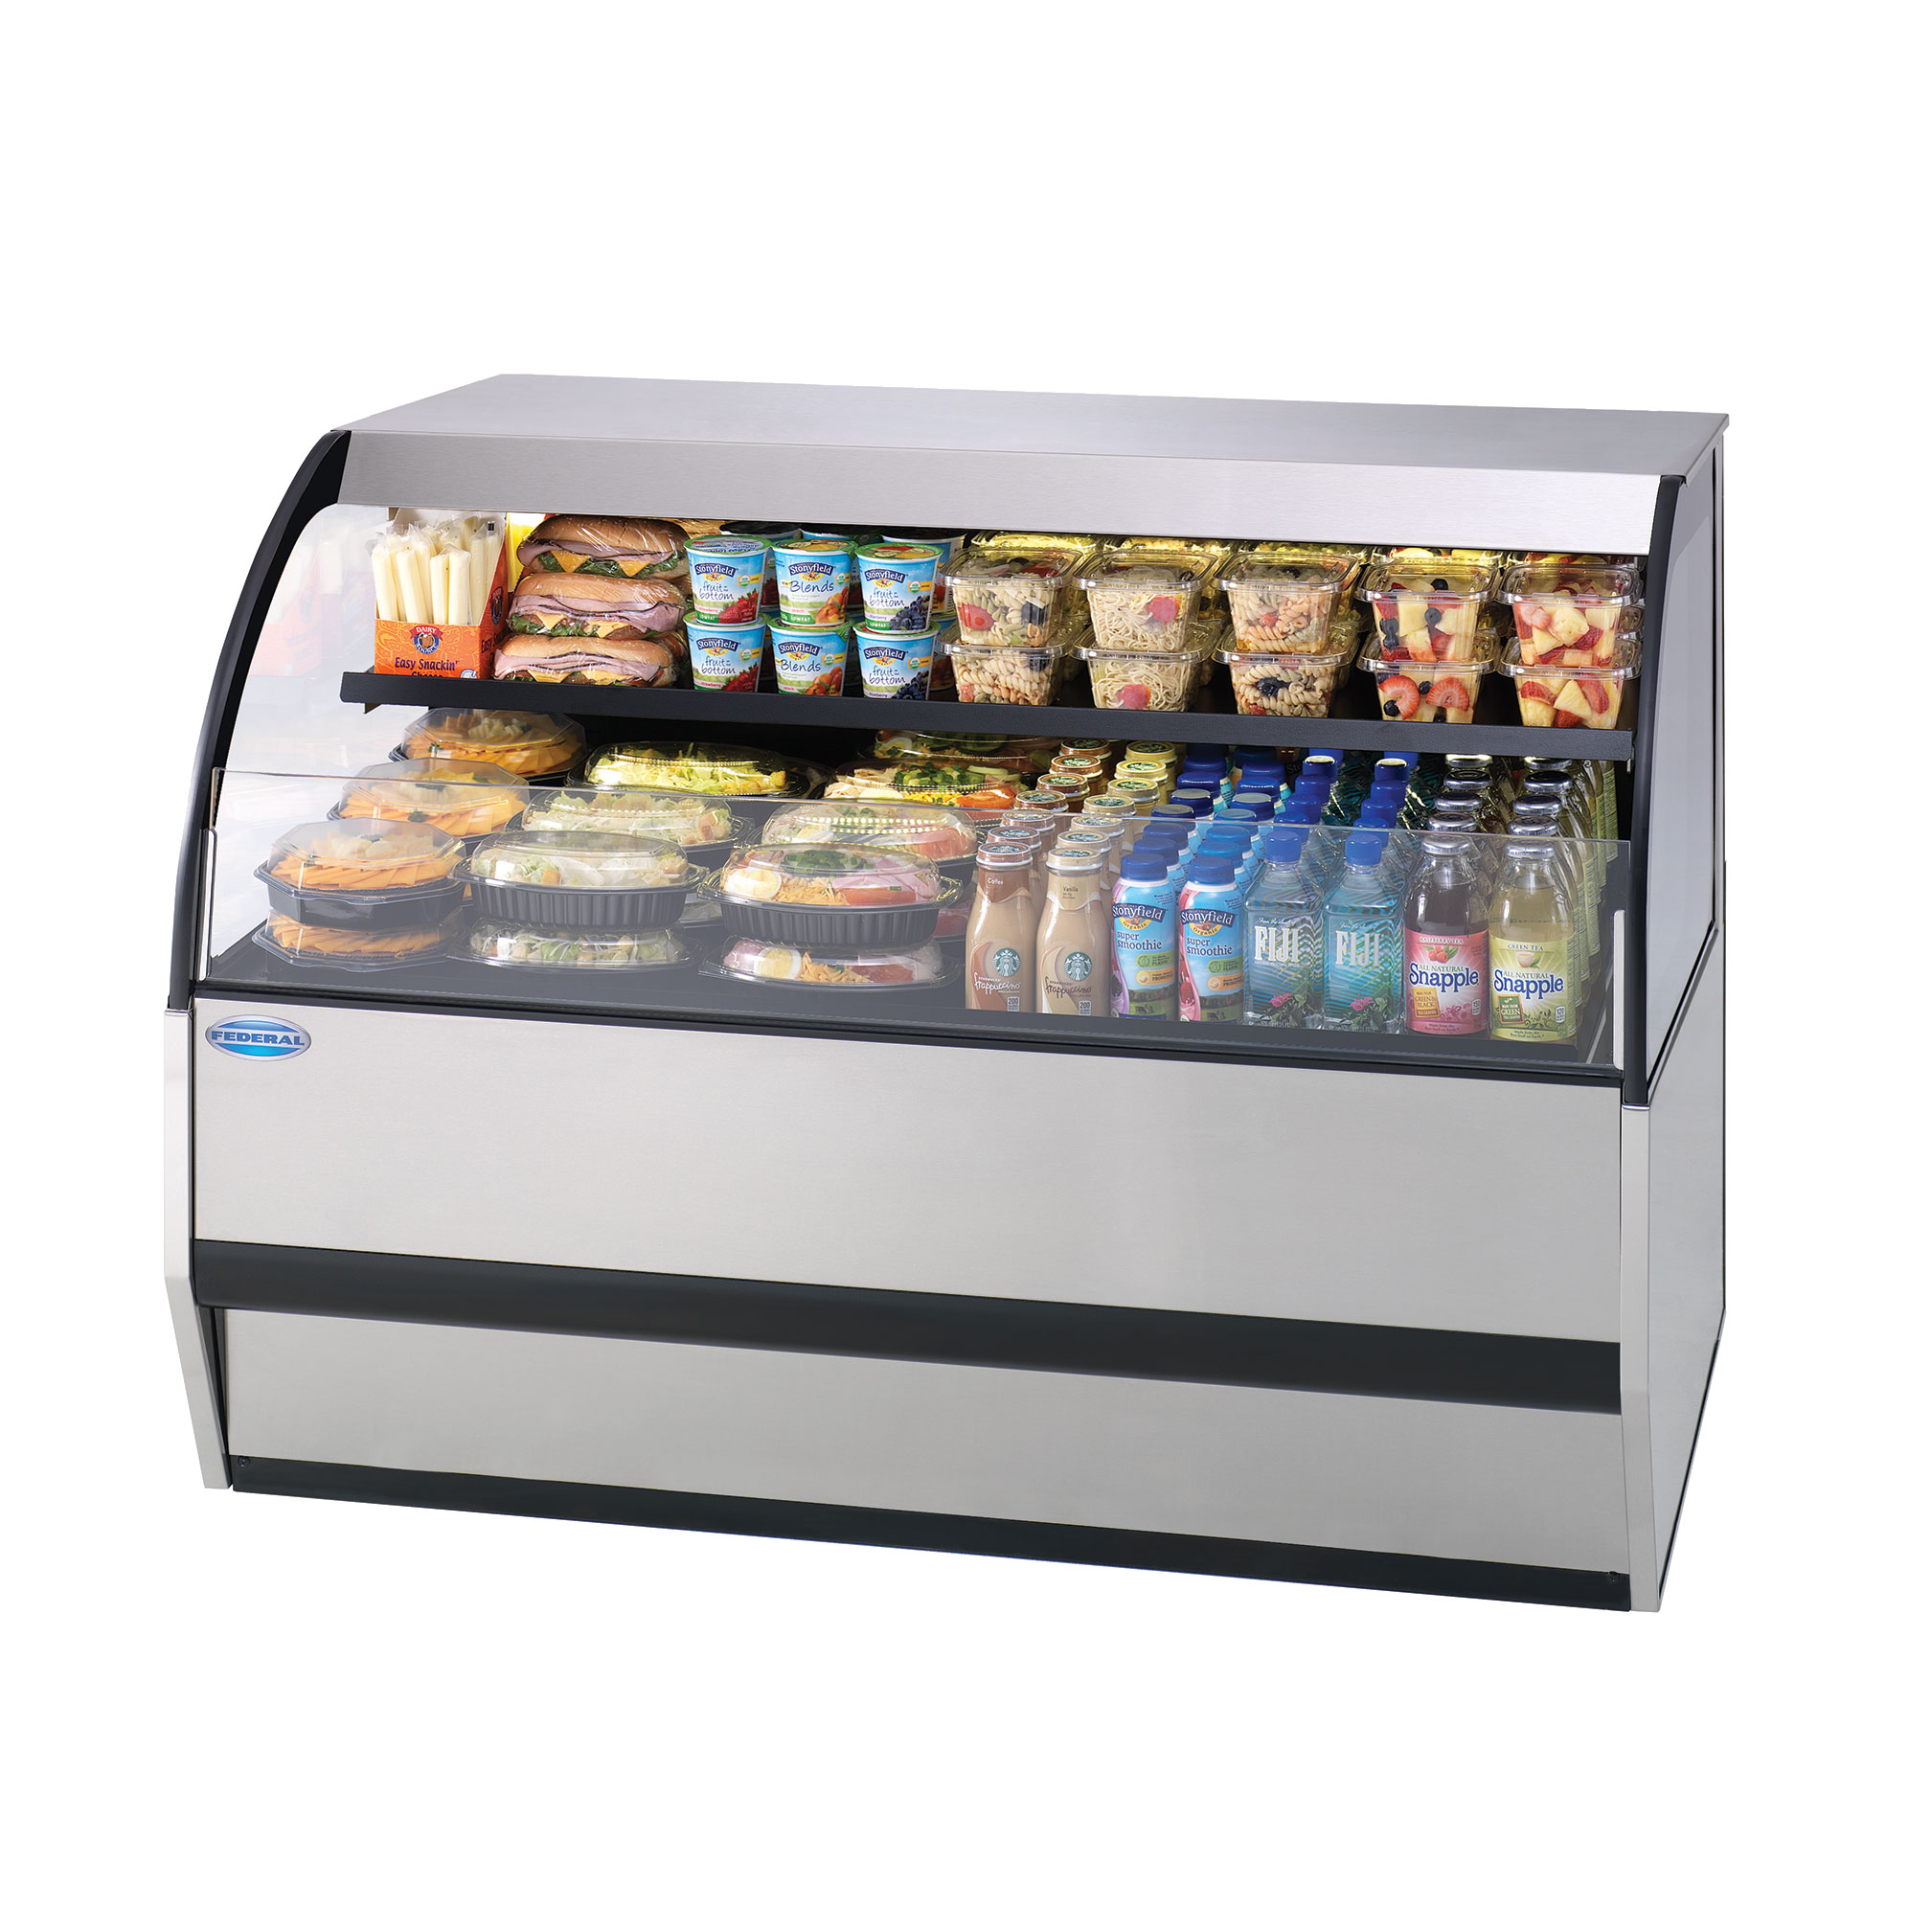 Federal Industries SSRVS-5933 display case, refrigerated, self-serve